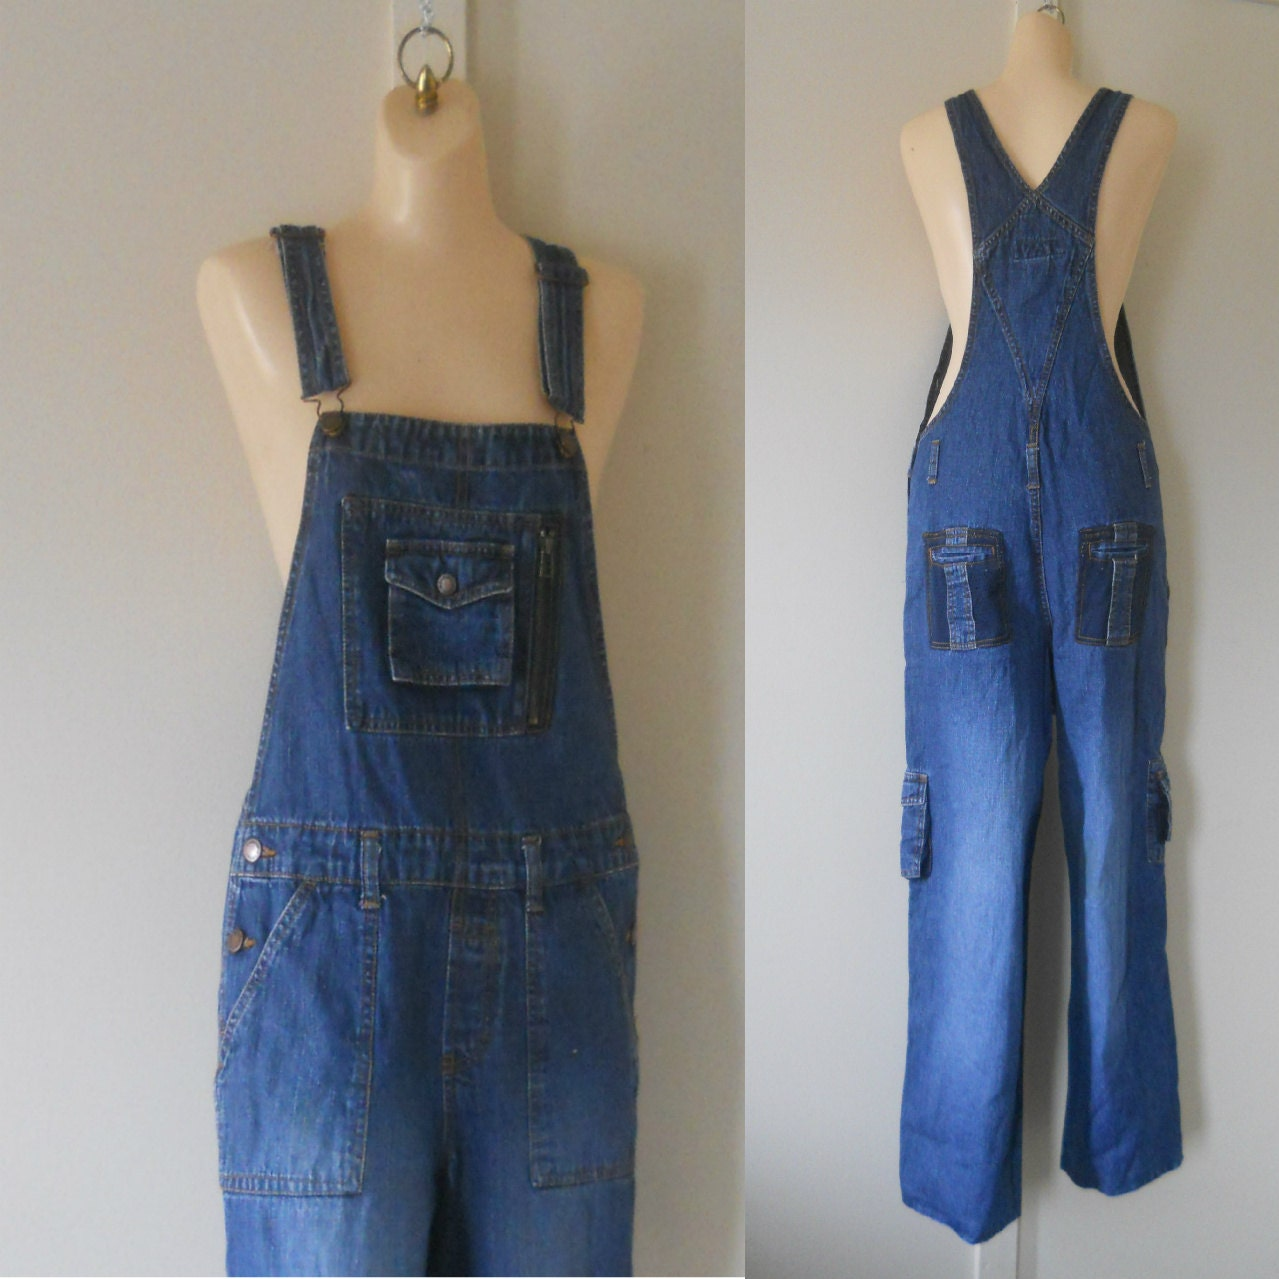 Women's denim overalls are attractive, dressy, and a compelling help to look your best with a great outfit. Fashionistas and women relish the texture and resplendence of these women's denim overalls. Choose the right color and clothing size from the listed items shown here according to your preference.